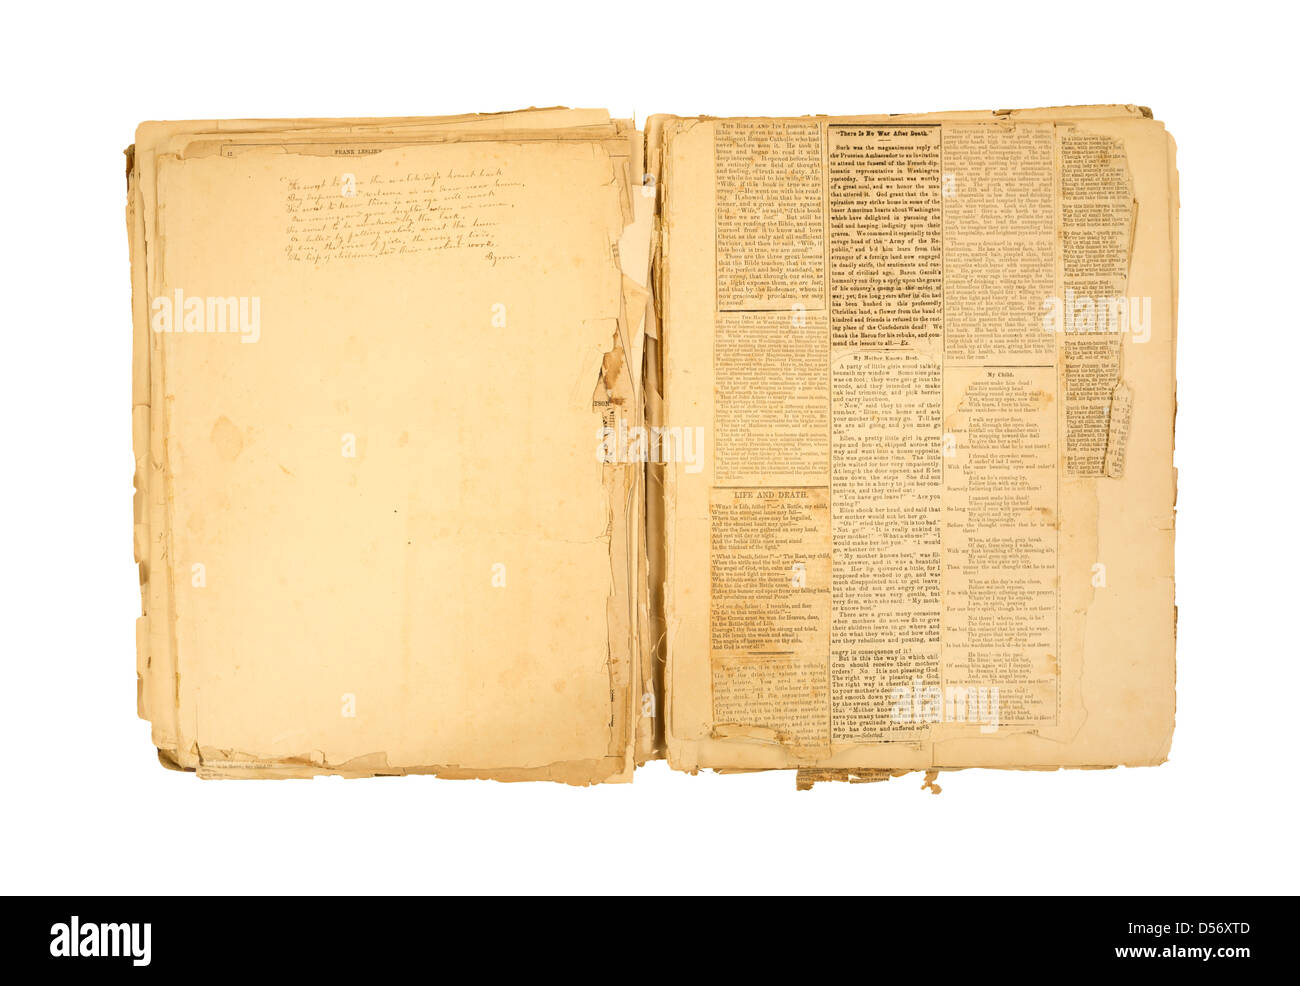 How to scrapbook with newspaper articles - An Antique Scrapbook With A Hand Written Poem And Several Newspaper Clippings Glued To Weathered And